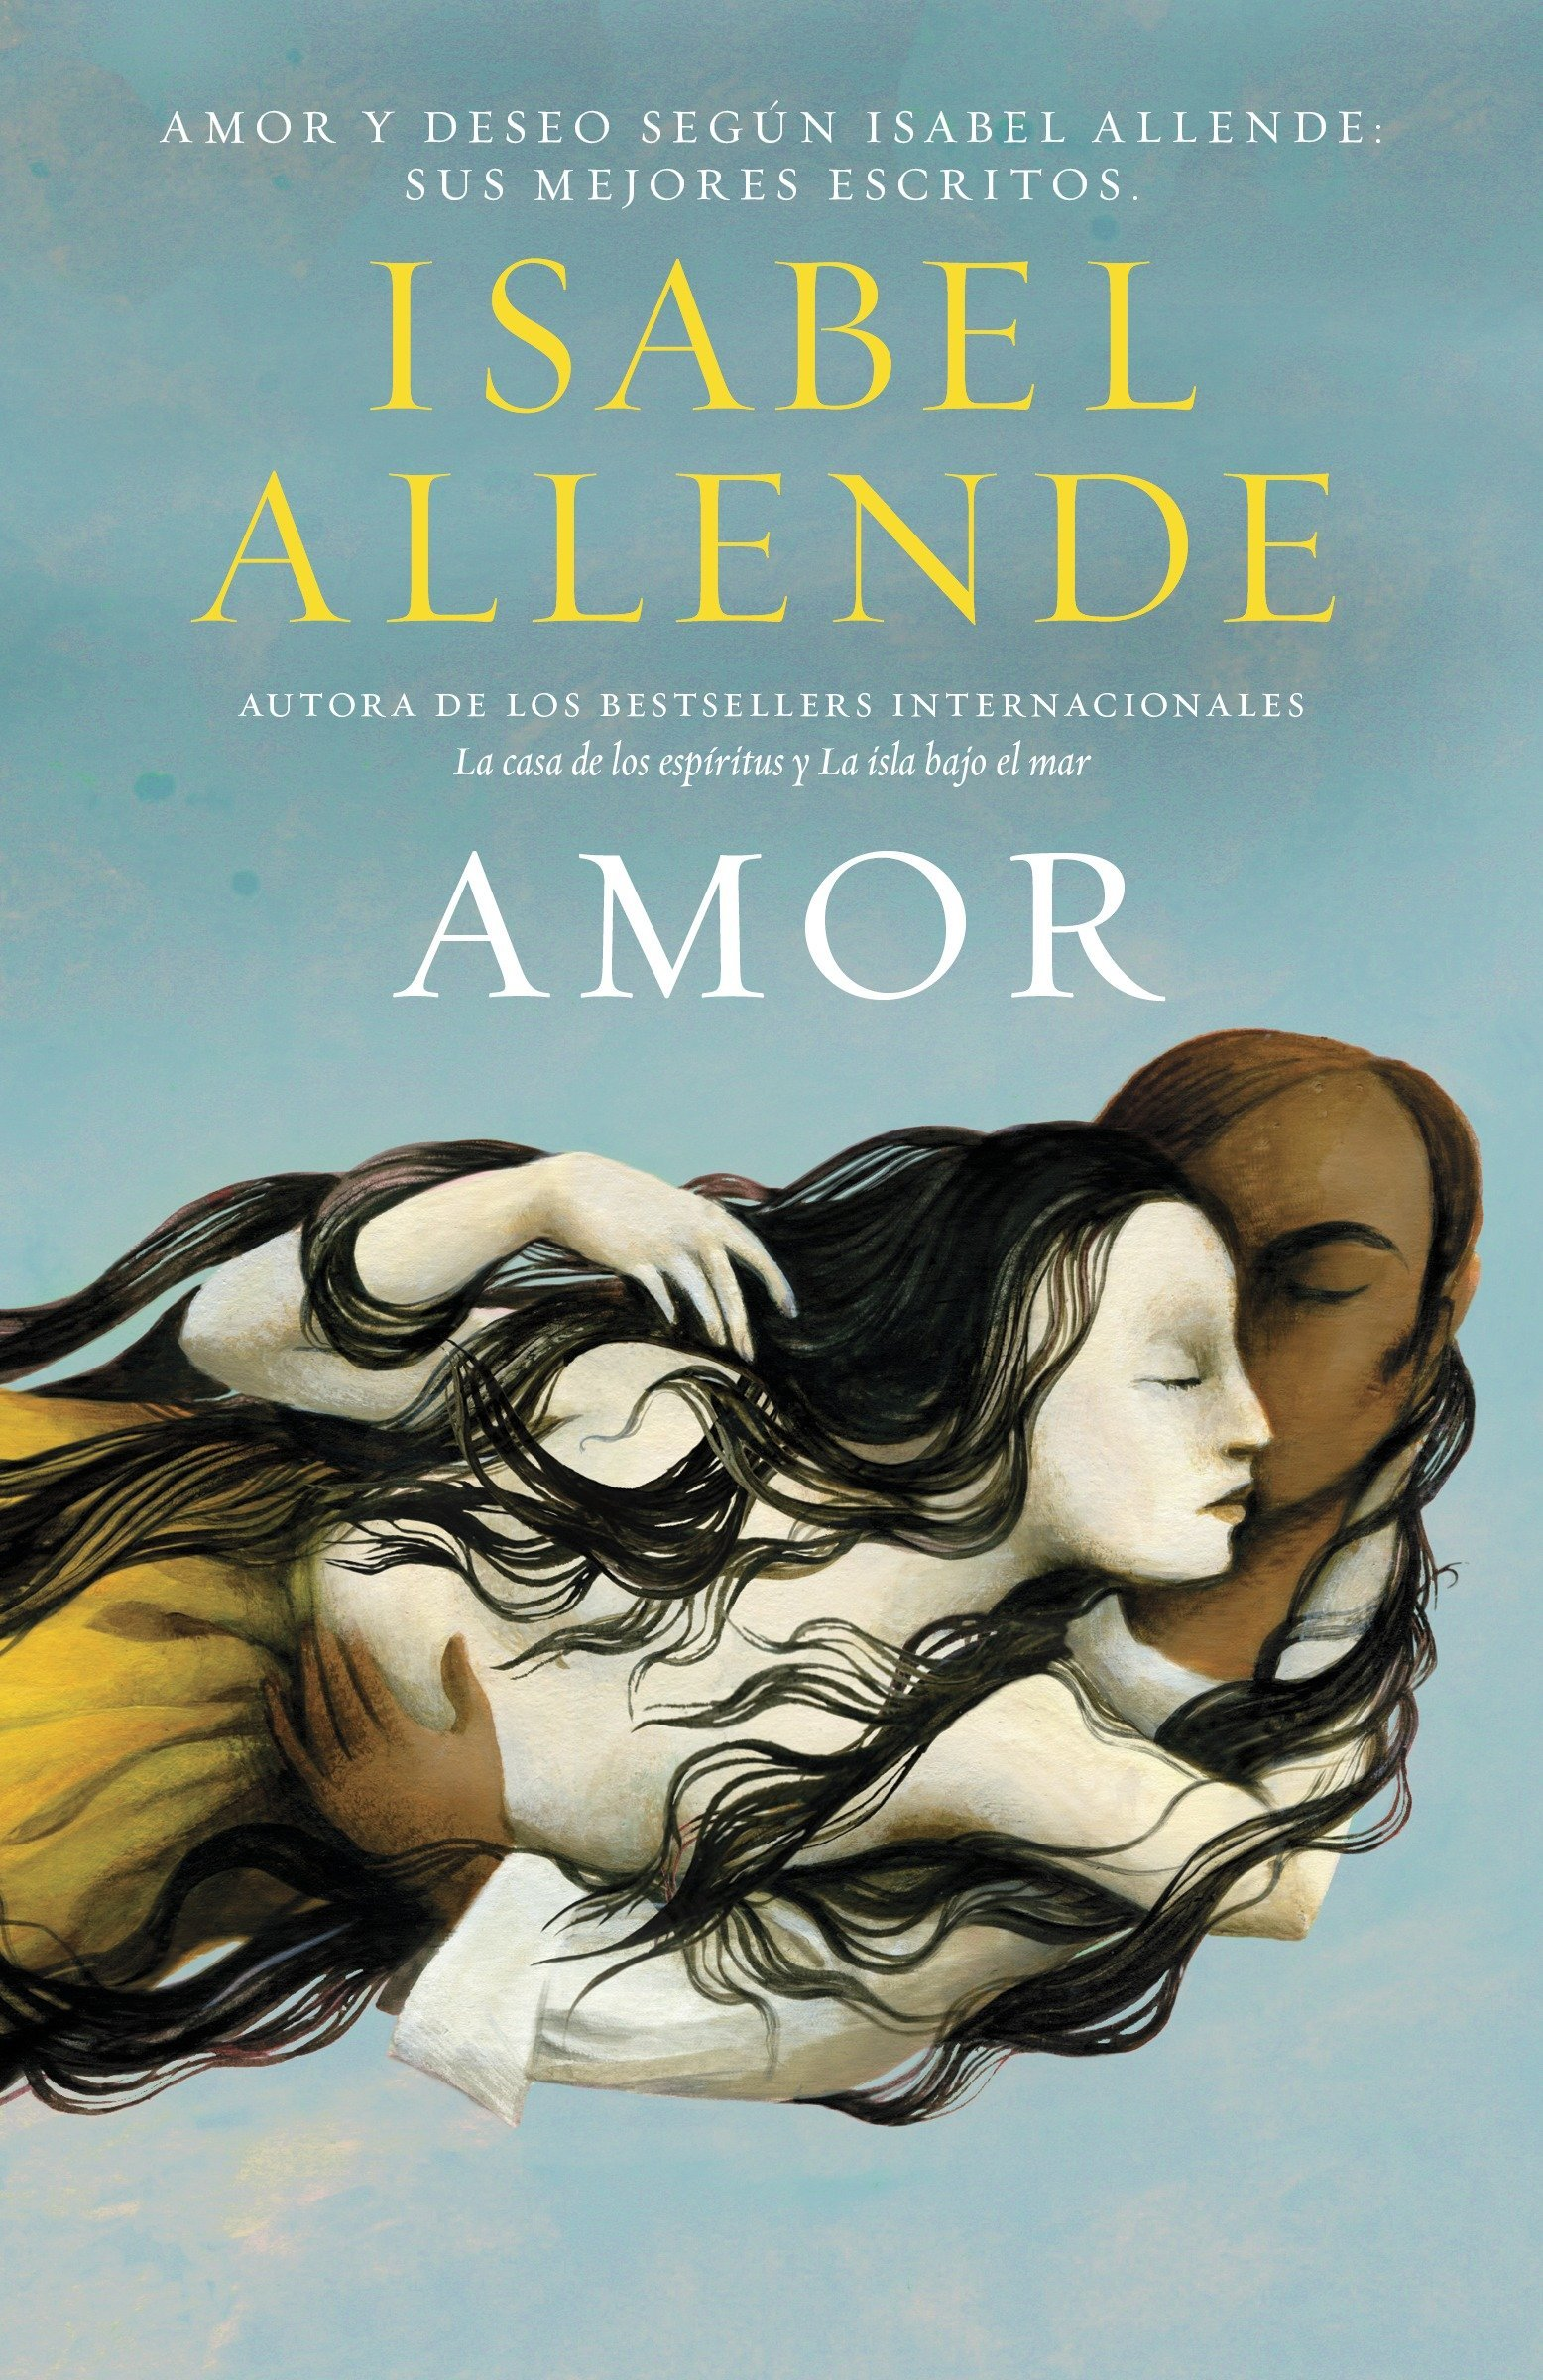 Amazon.com: Amor (Spanish Edition) (9780345806017): Isabel Allende: Books